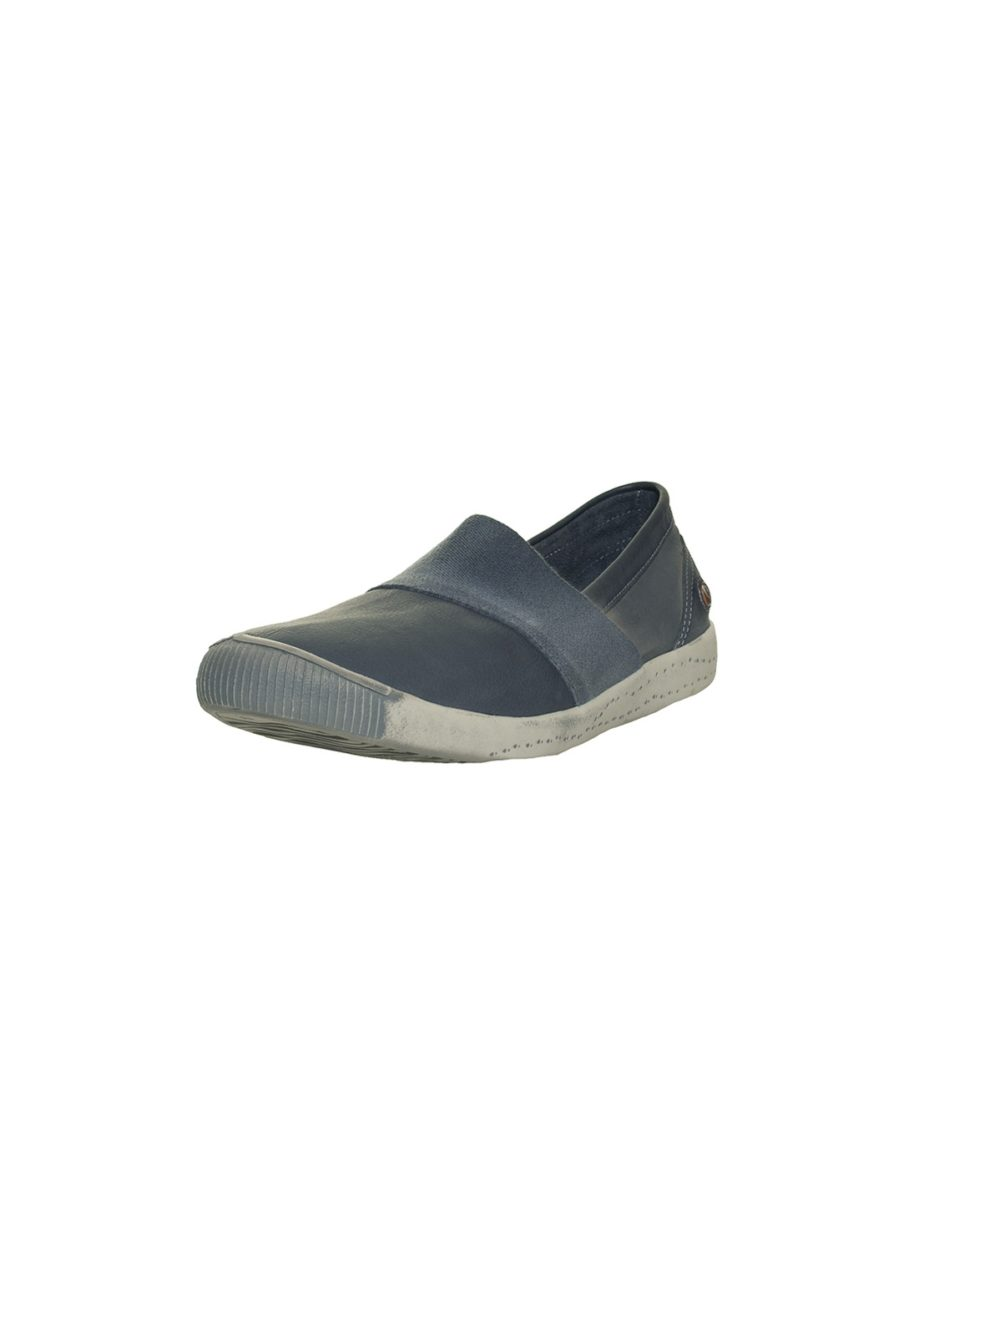 Ino Shoe Softinos Katie Kerr Women's Shoes